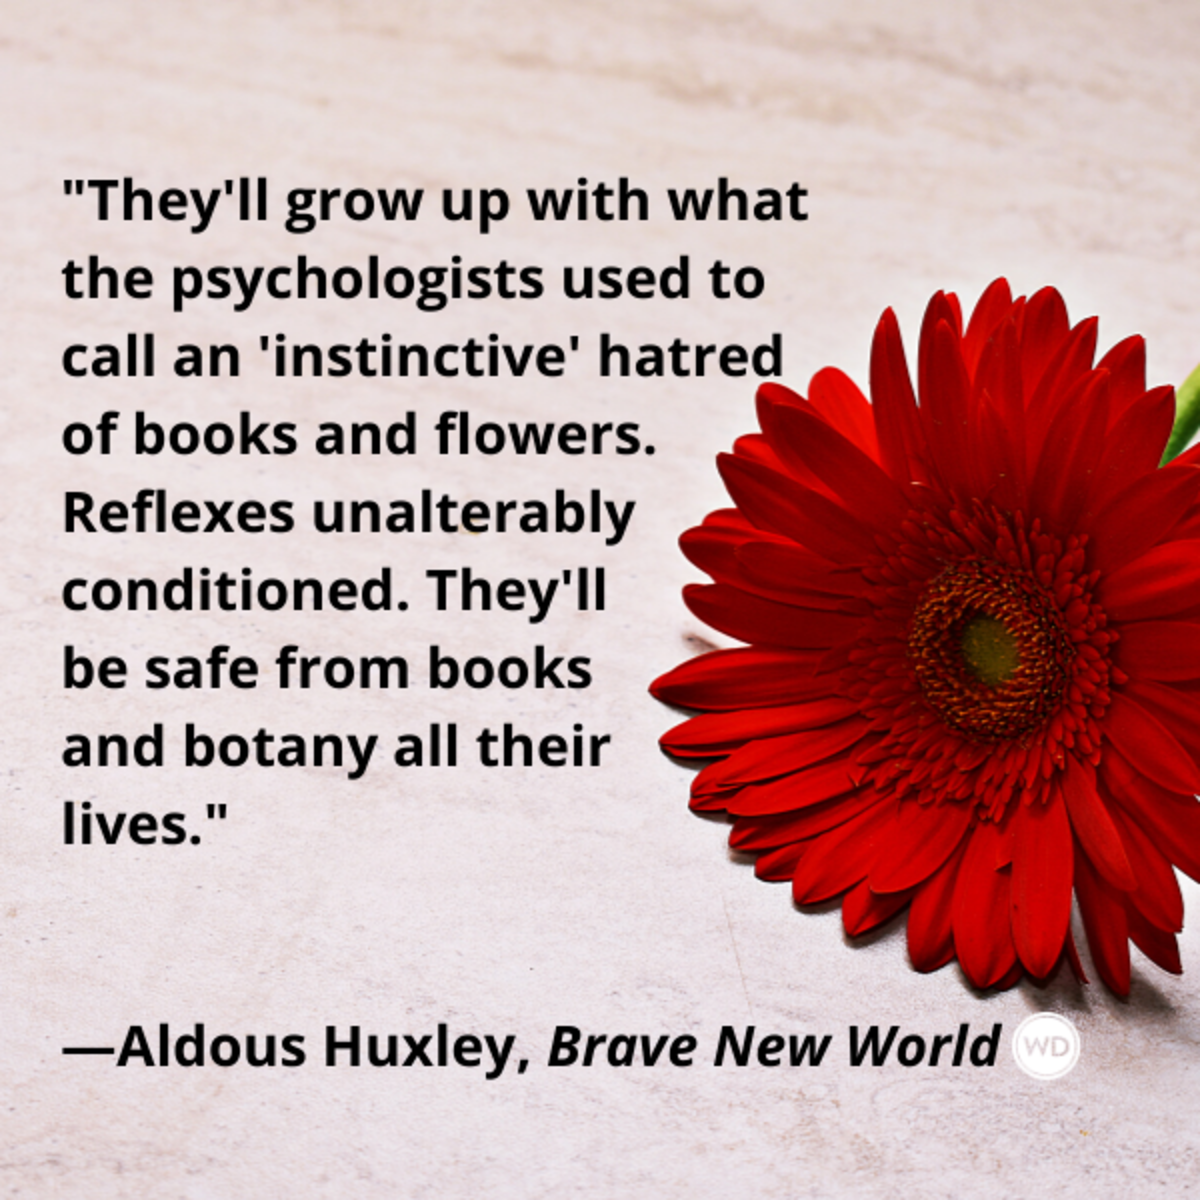 aldous_huxley_brave_new_world_quotes_theyll_be_safe_from_books_and_botany_all_their_lives